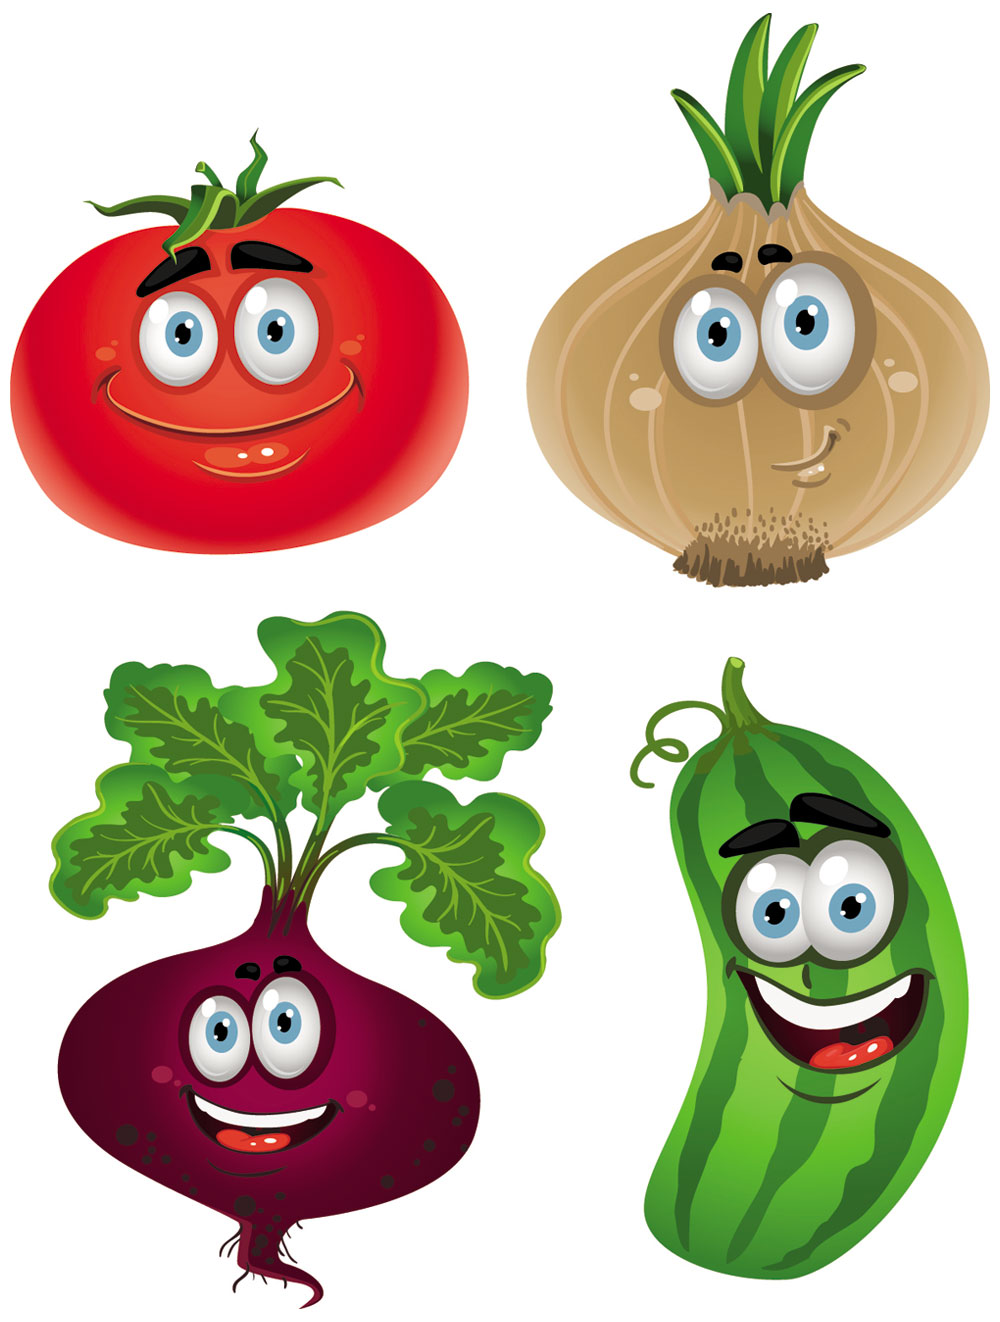 Watermelon clipart single vegetable Drawings Cartoon  and Vegetable